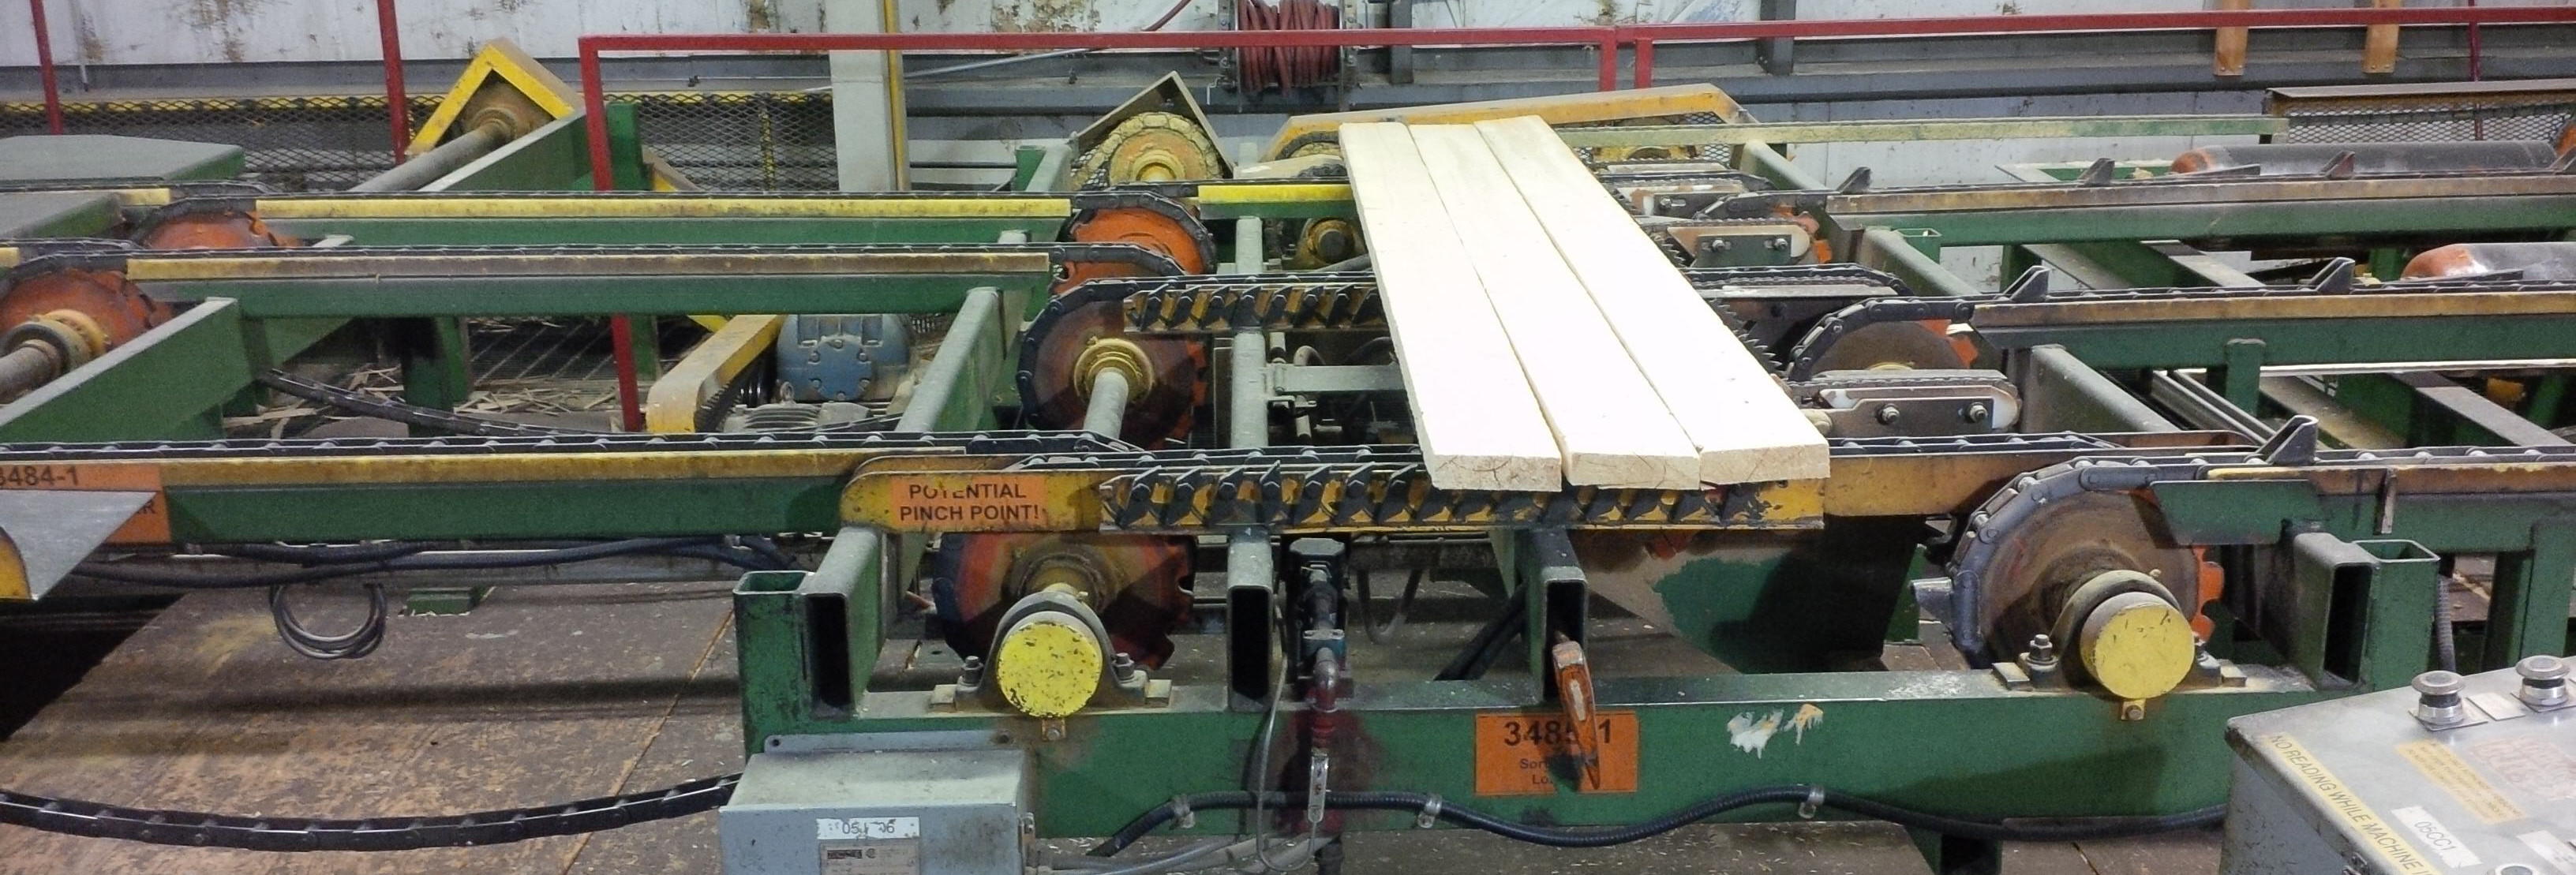 Conveyor picture onsite at Sawmill